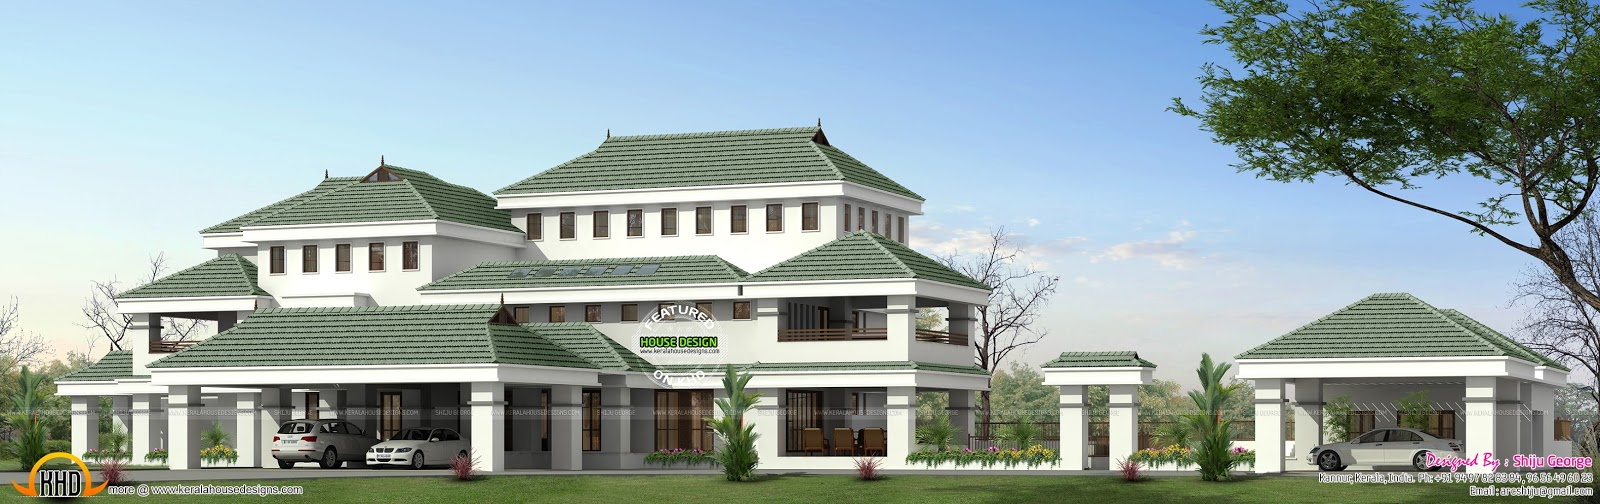 10000 sq ft house plan kerala home design and floor plans for Home plans over 10000 square feet